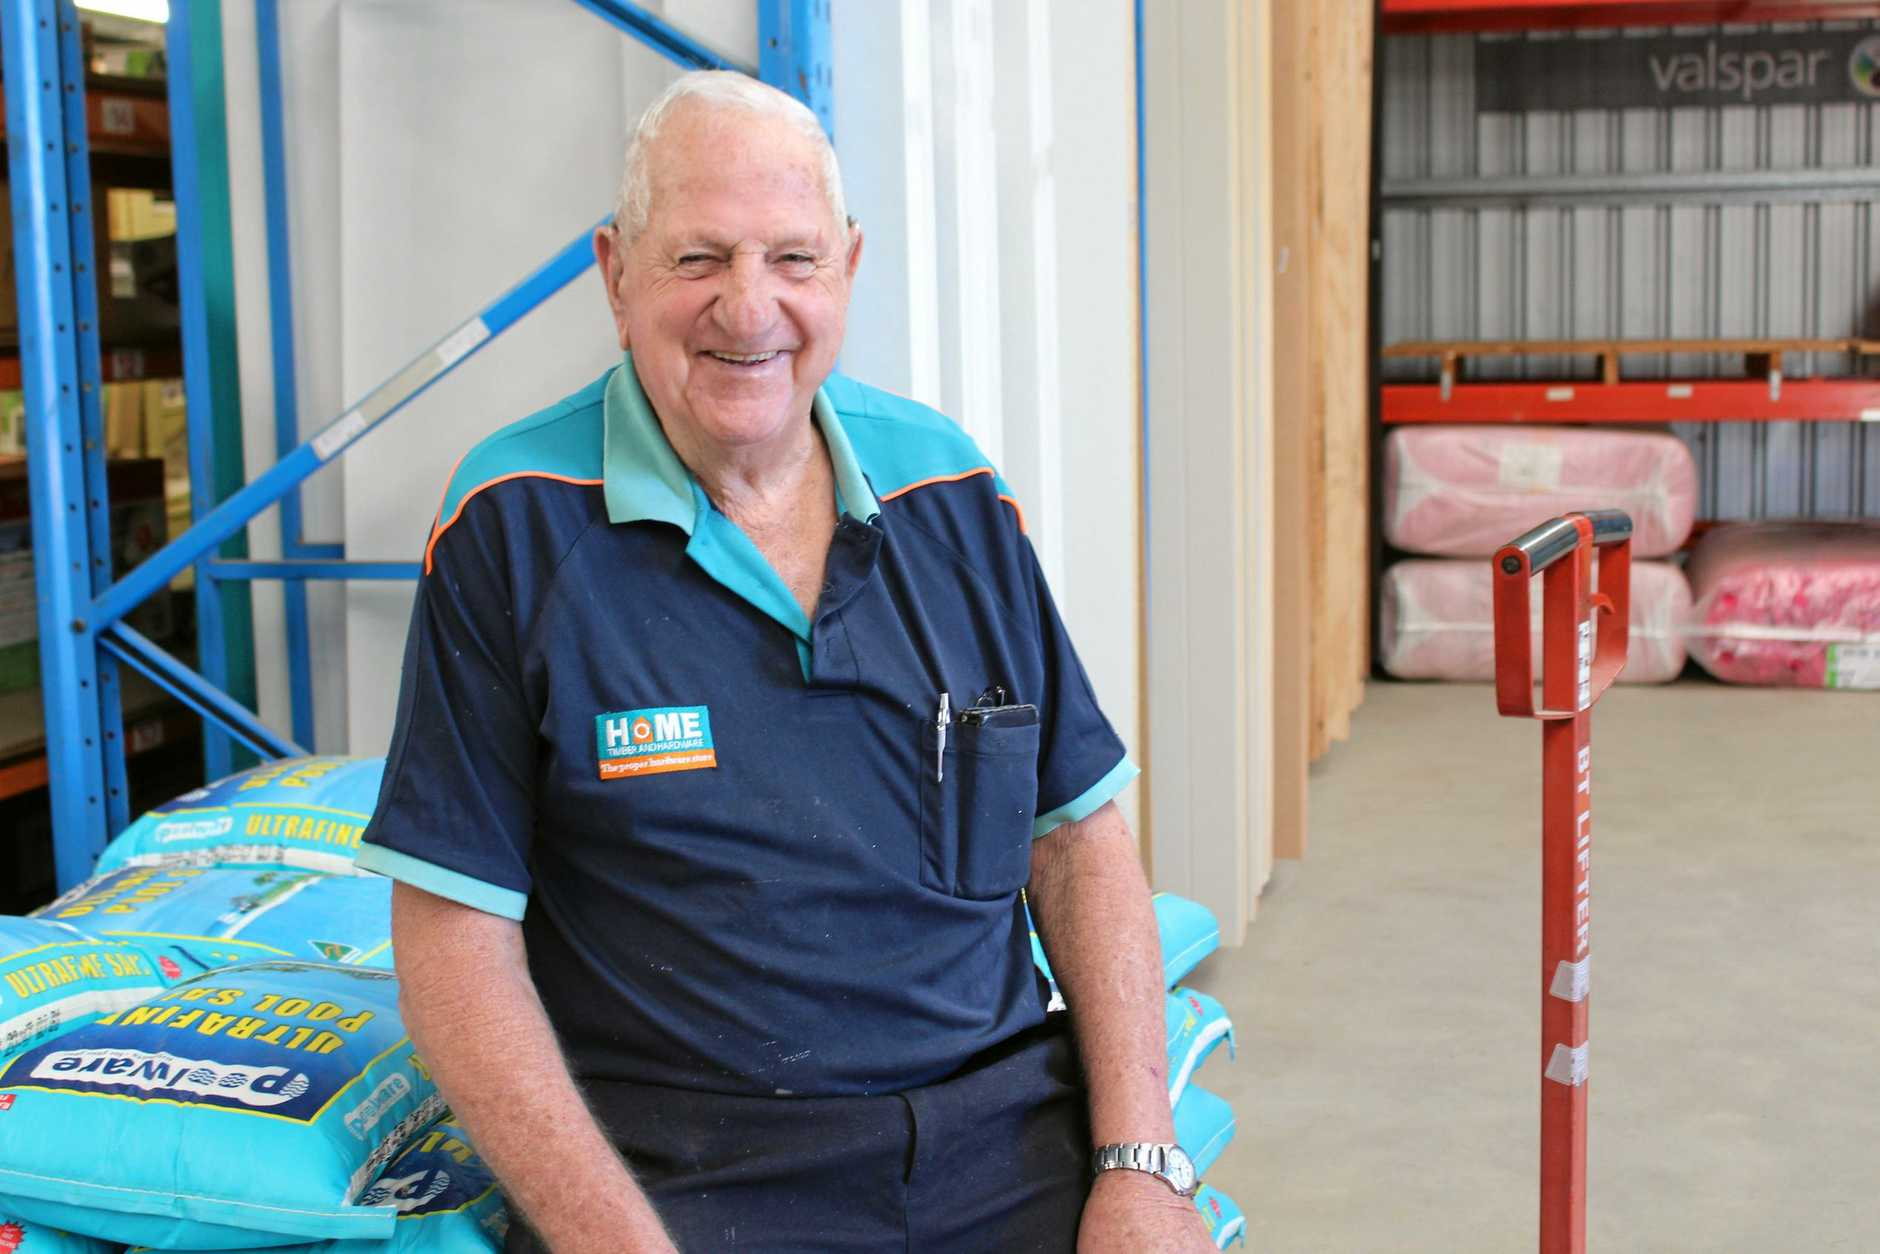 John Brydon is 80 years of age and still chipping away in the aisles of Olsens Home Hardware and Paint Place, where he has worked for 20 years.